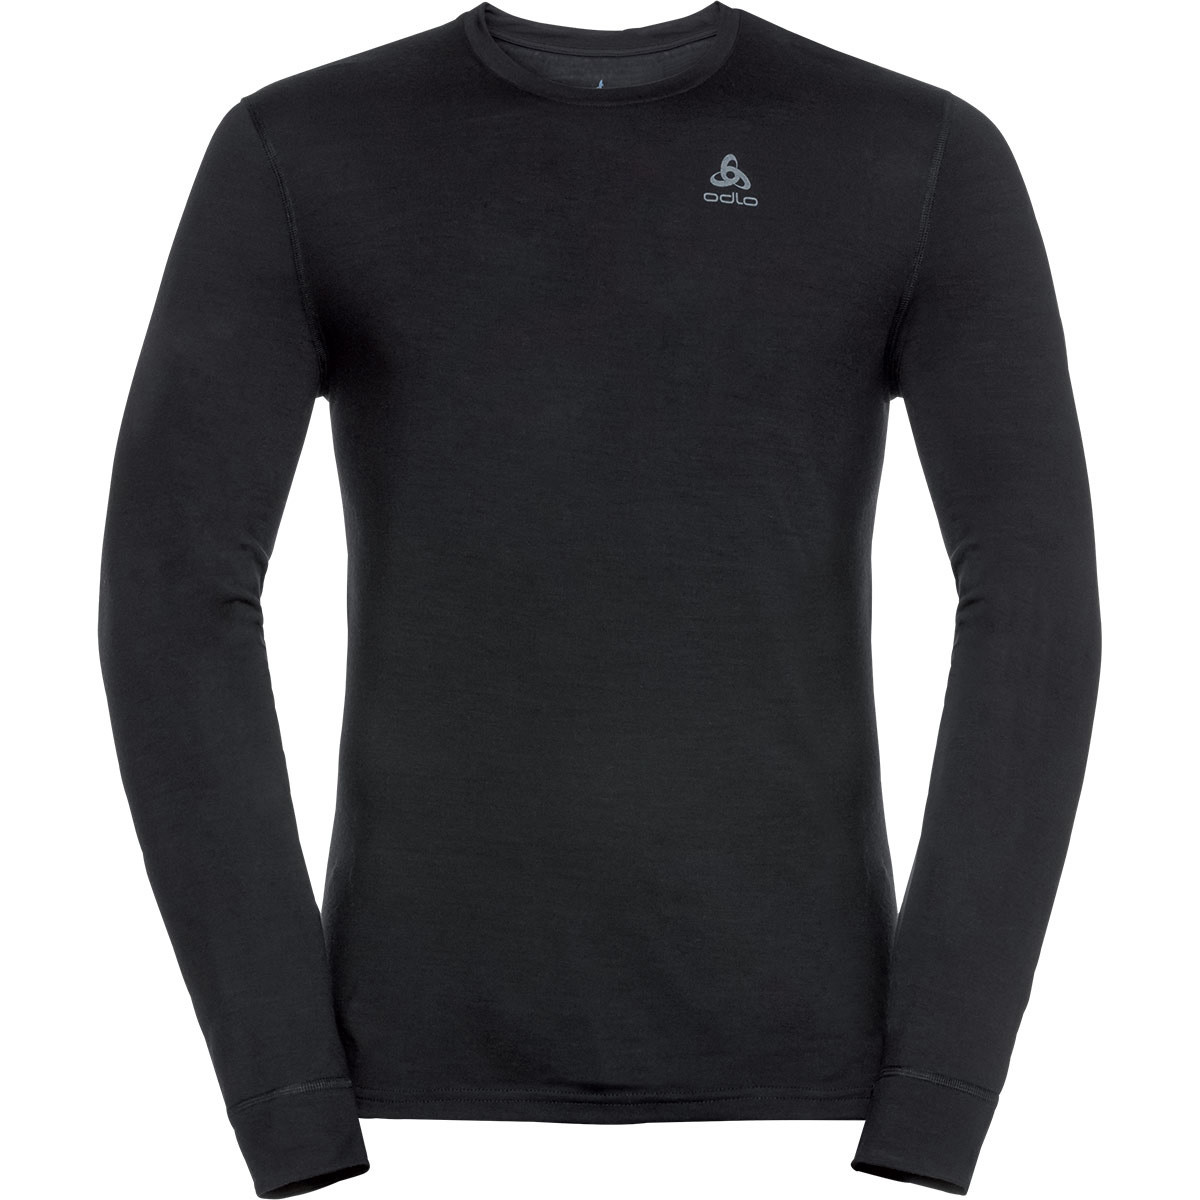 Термофутболка Odlo L/S Crew Neck Natural 100% Merino Warm (110812 Black M)